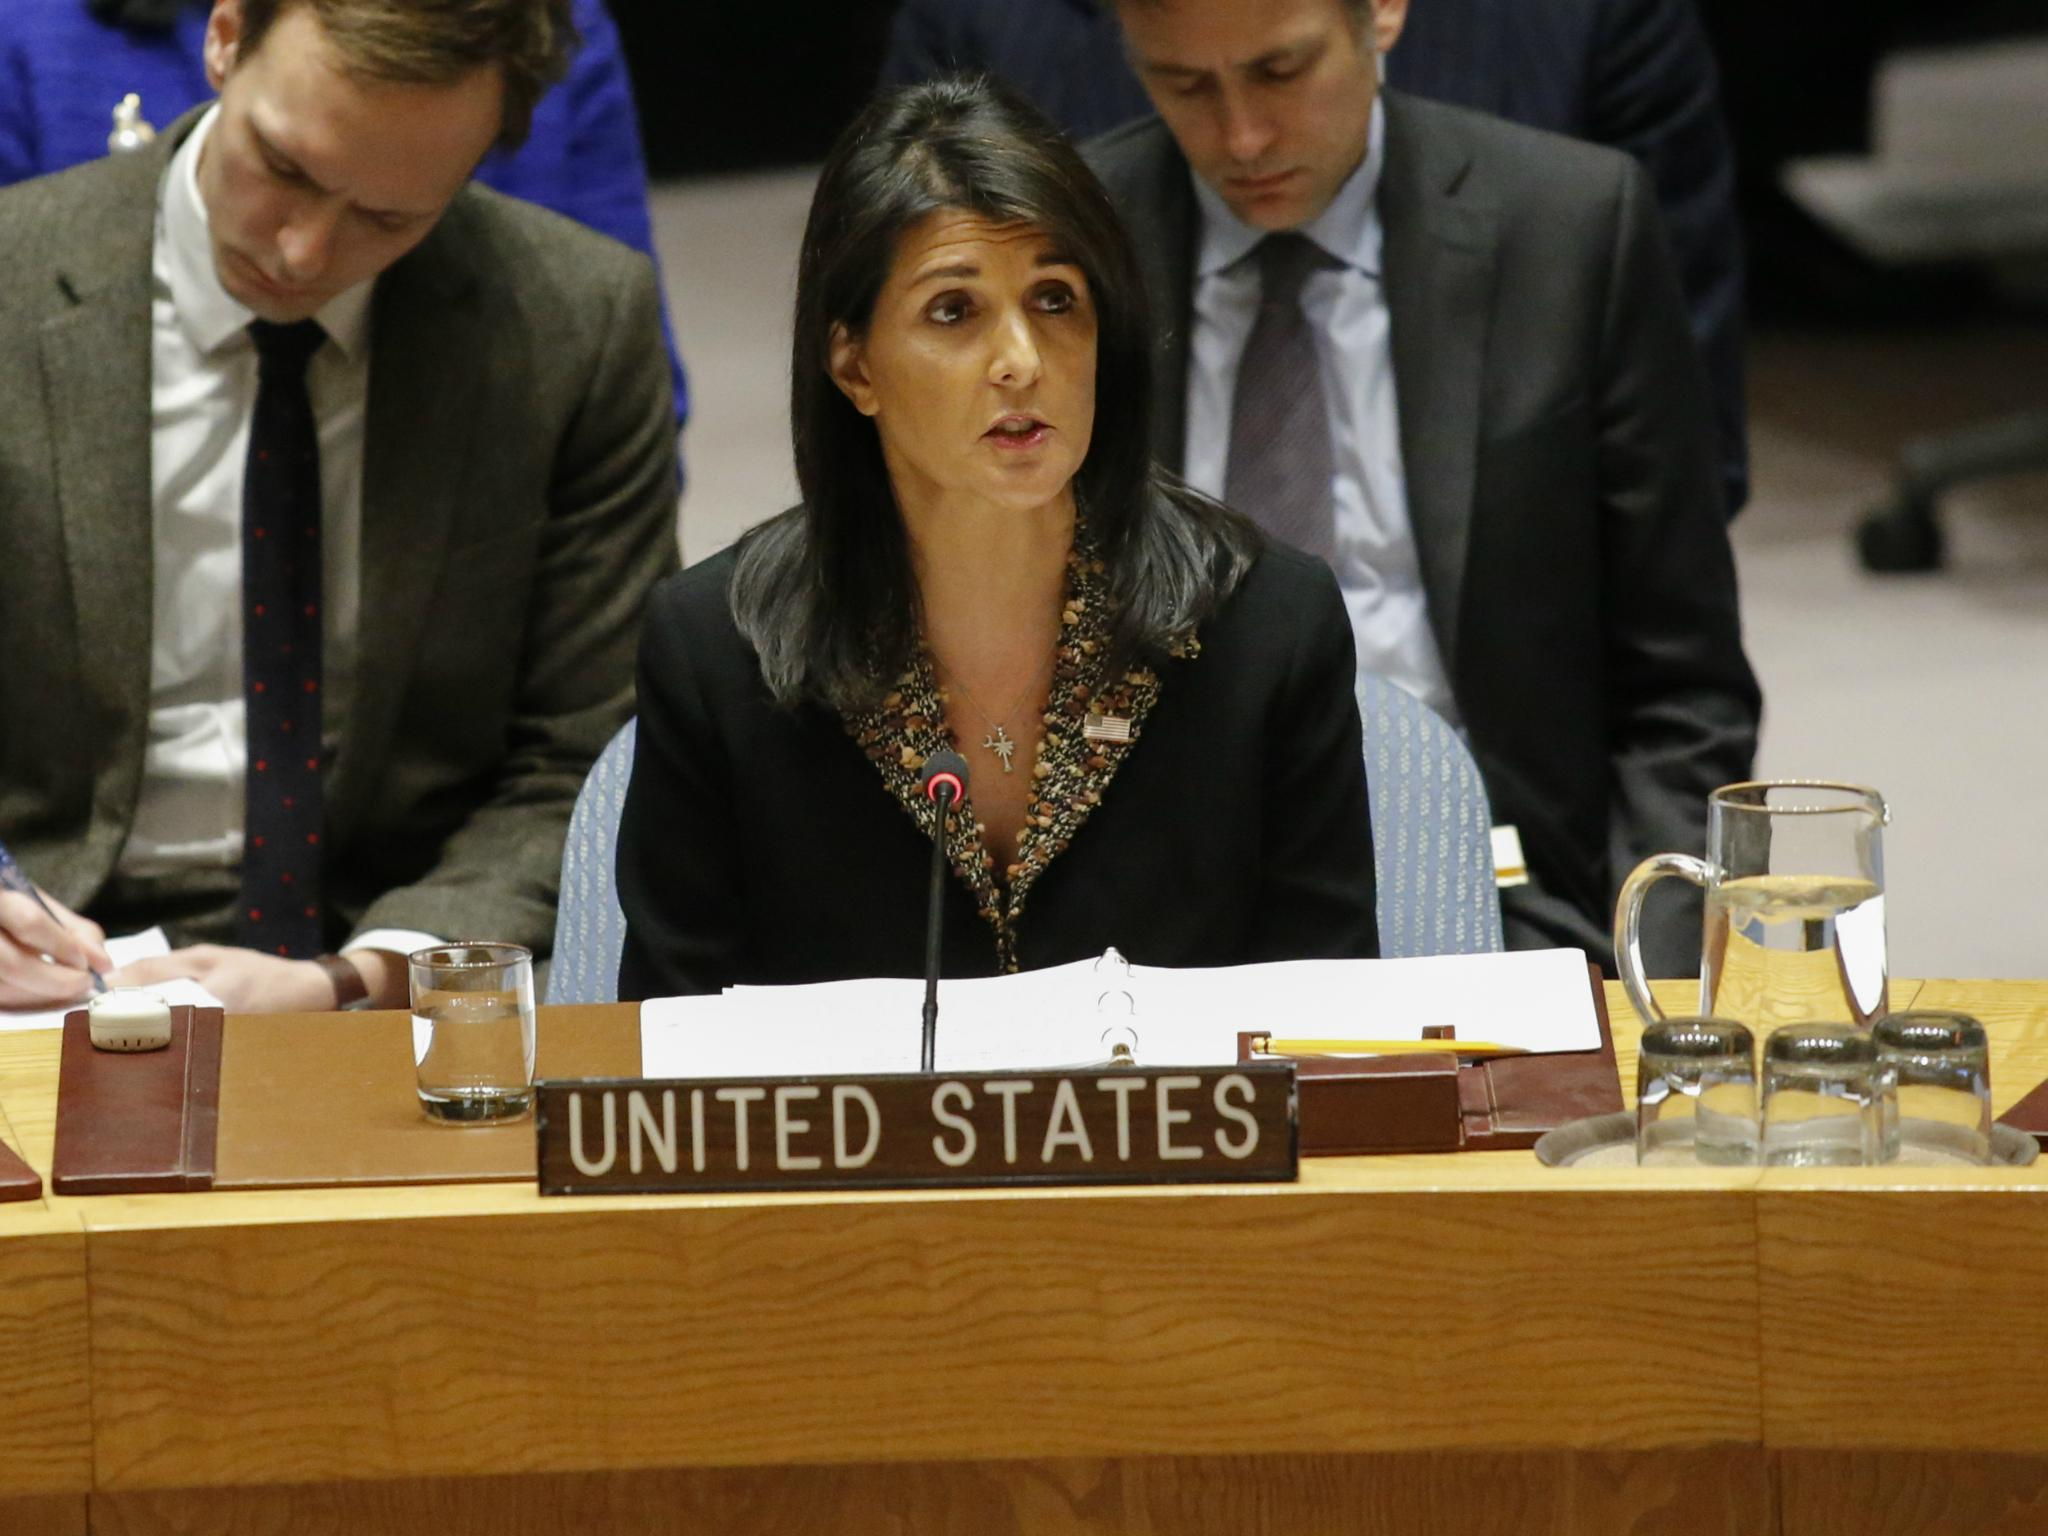 Nikki Haley 'tricked' by Russian pranksters into talking about fictional country 'Binomo'